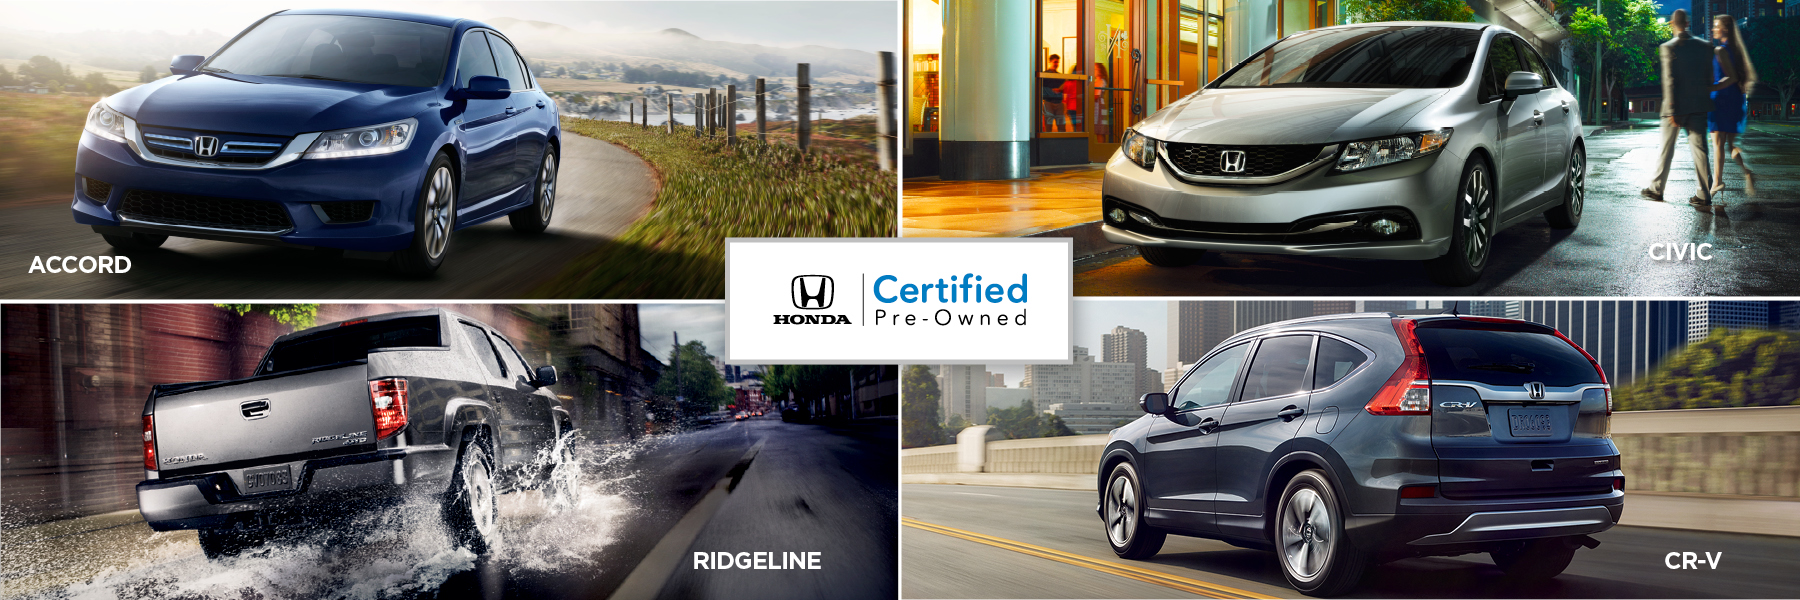 Tri-State Honda Certified Pre-Owned Vehicles